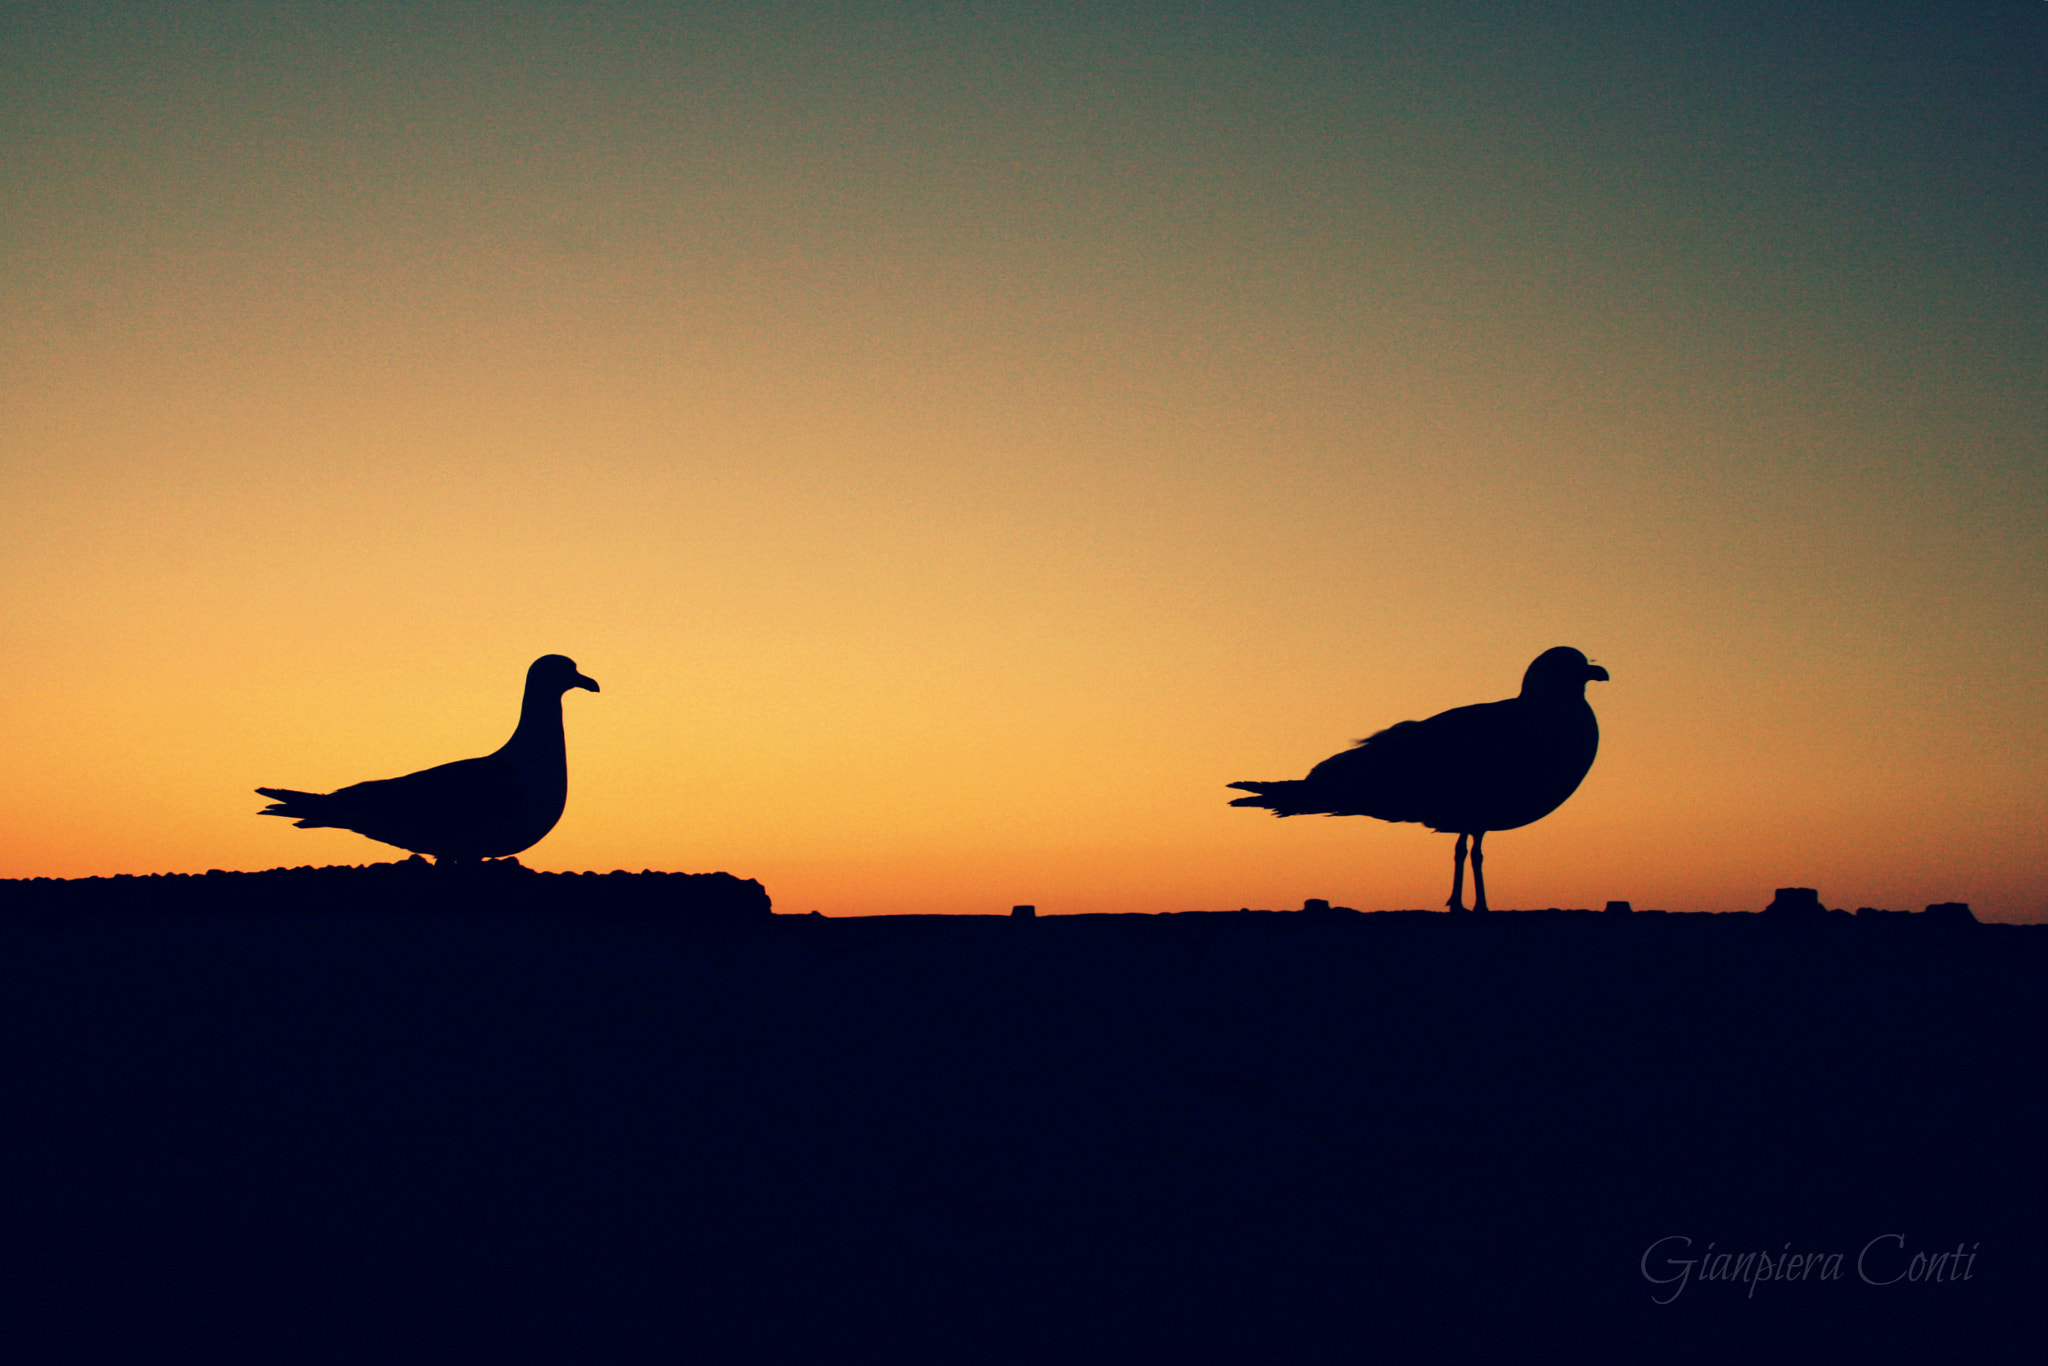 Photograph Silhouettes by Gianpiera  Conti on 500px